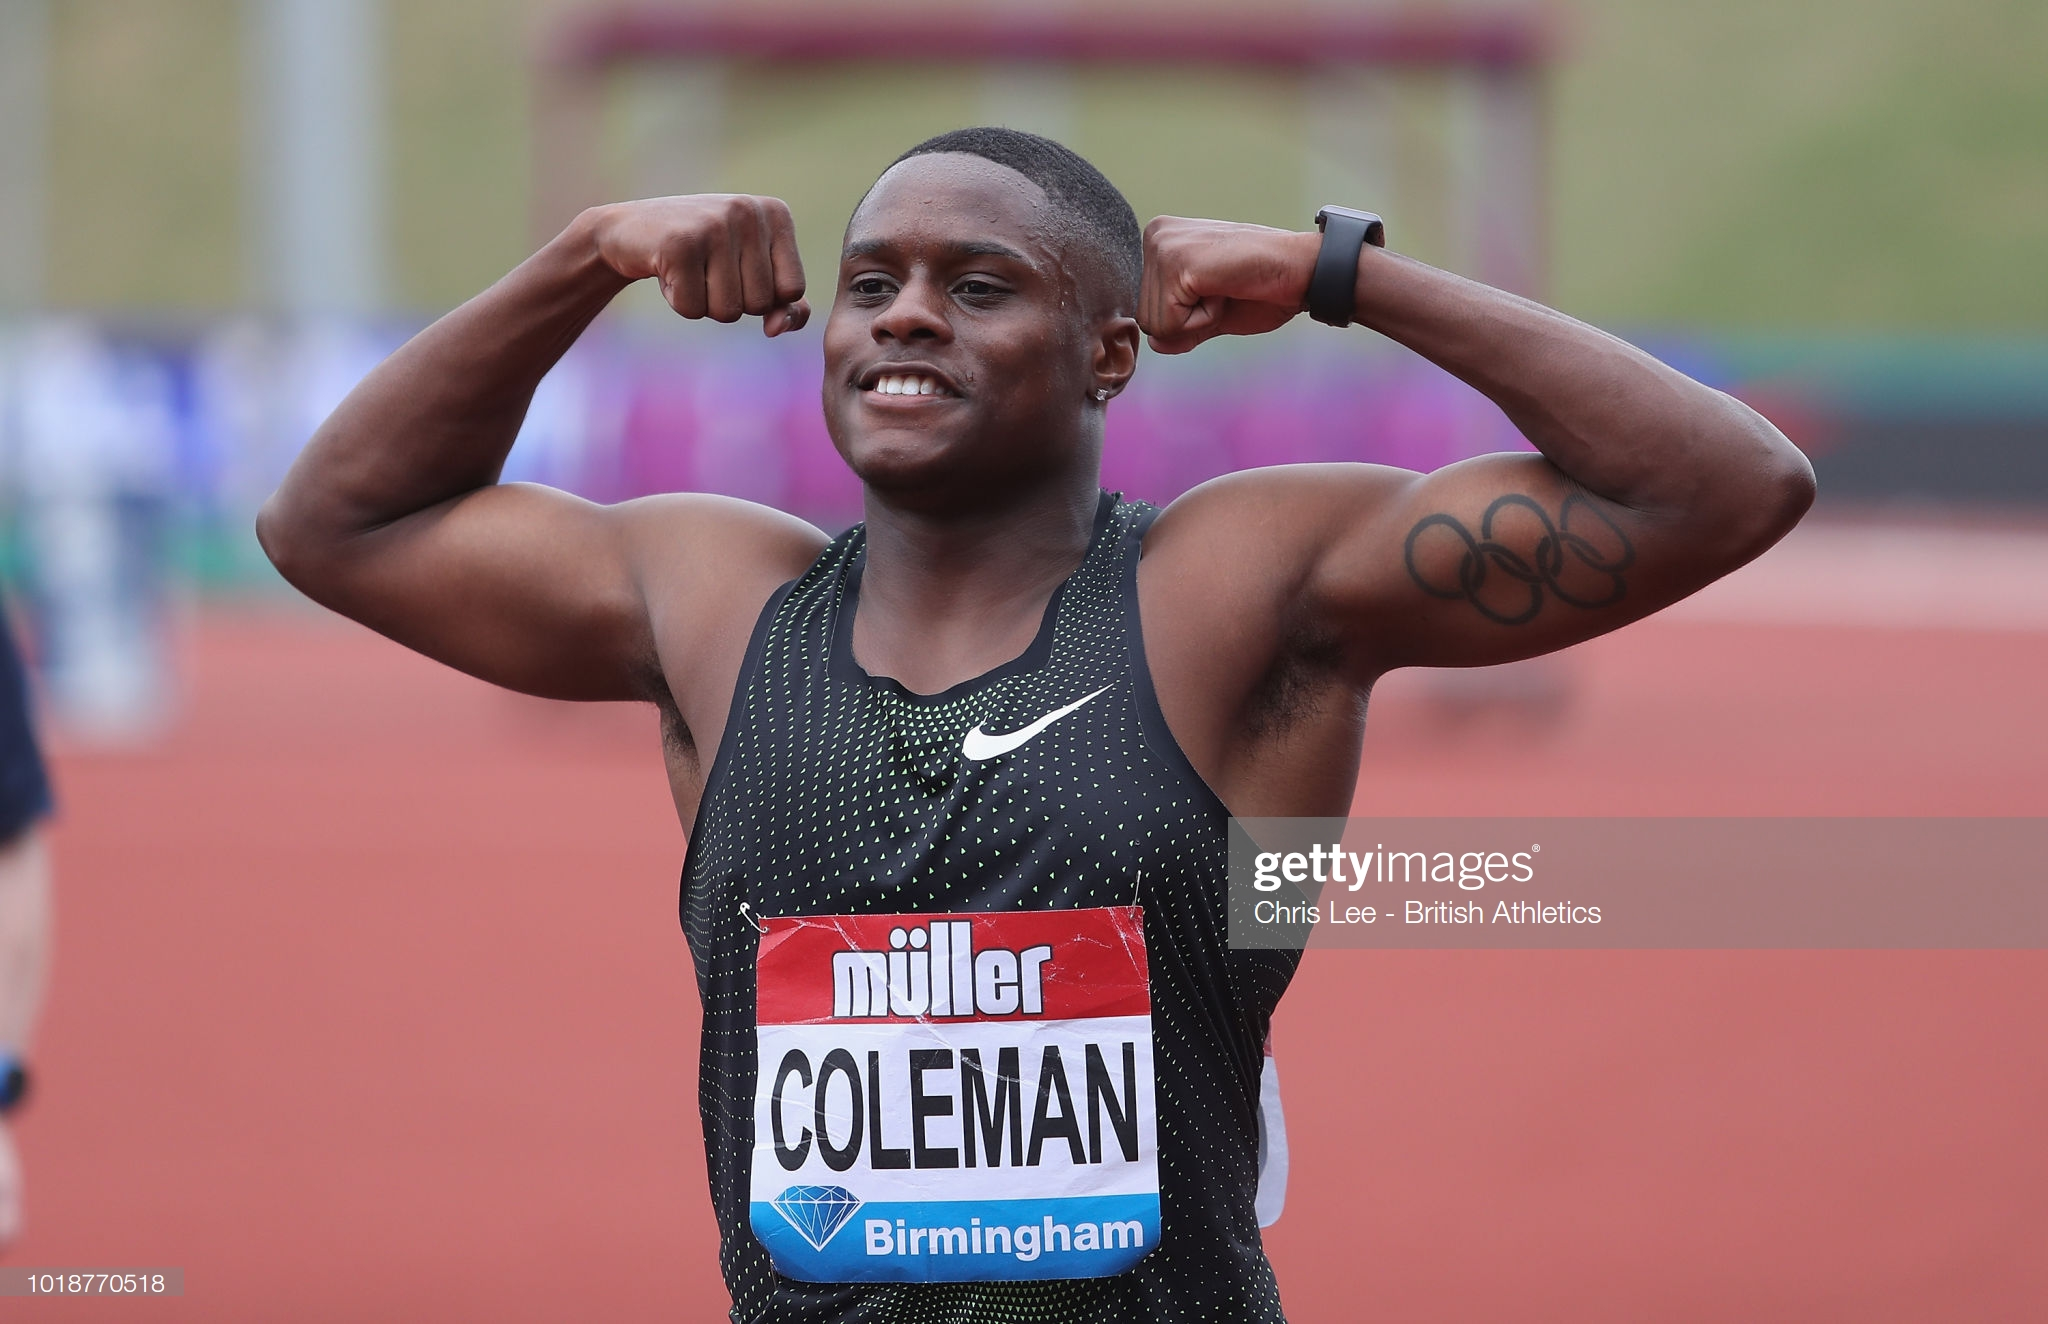 Christian Coleman facing possibility of a two-year ban